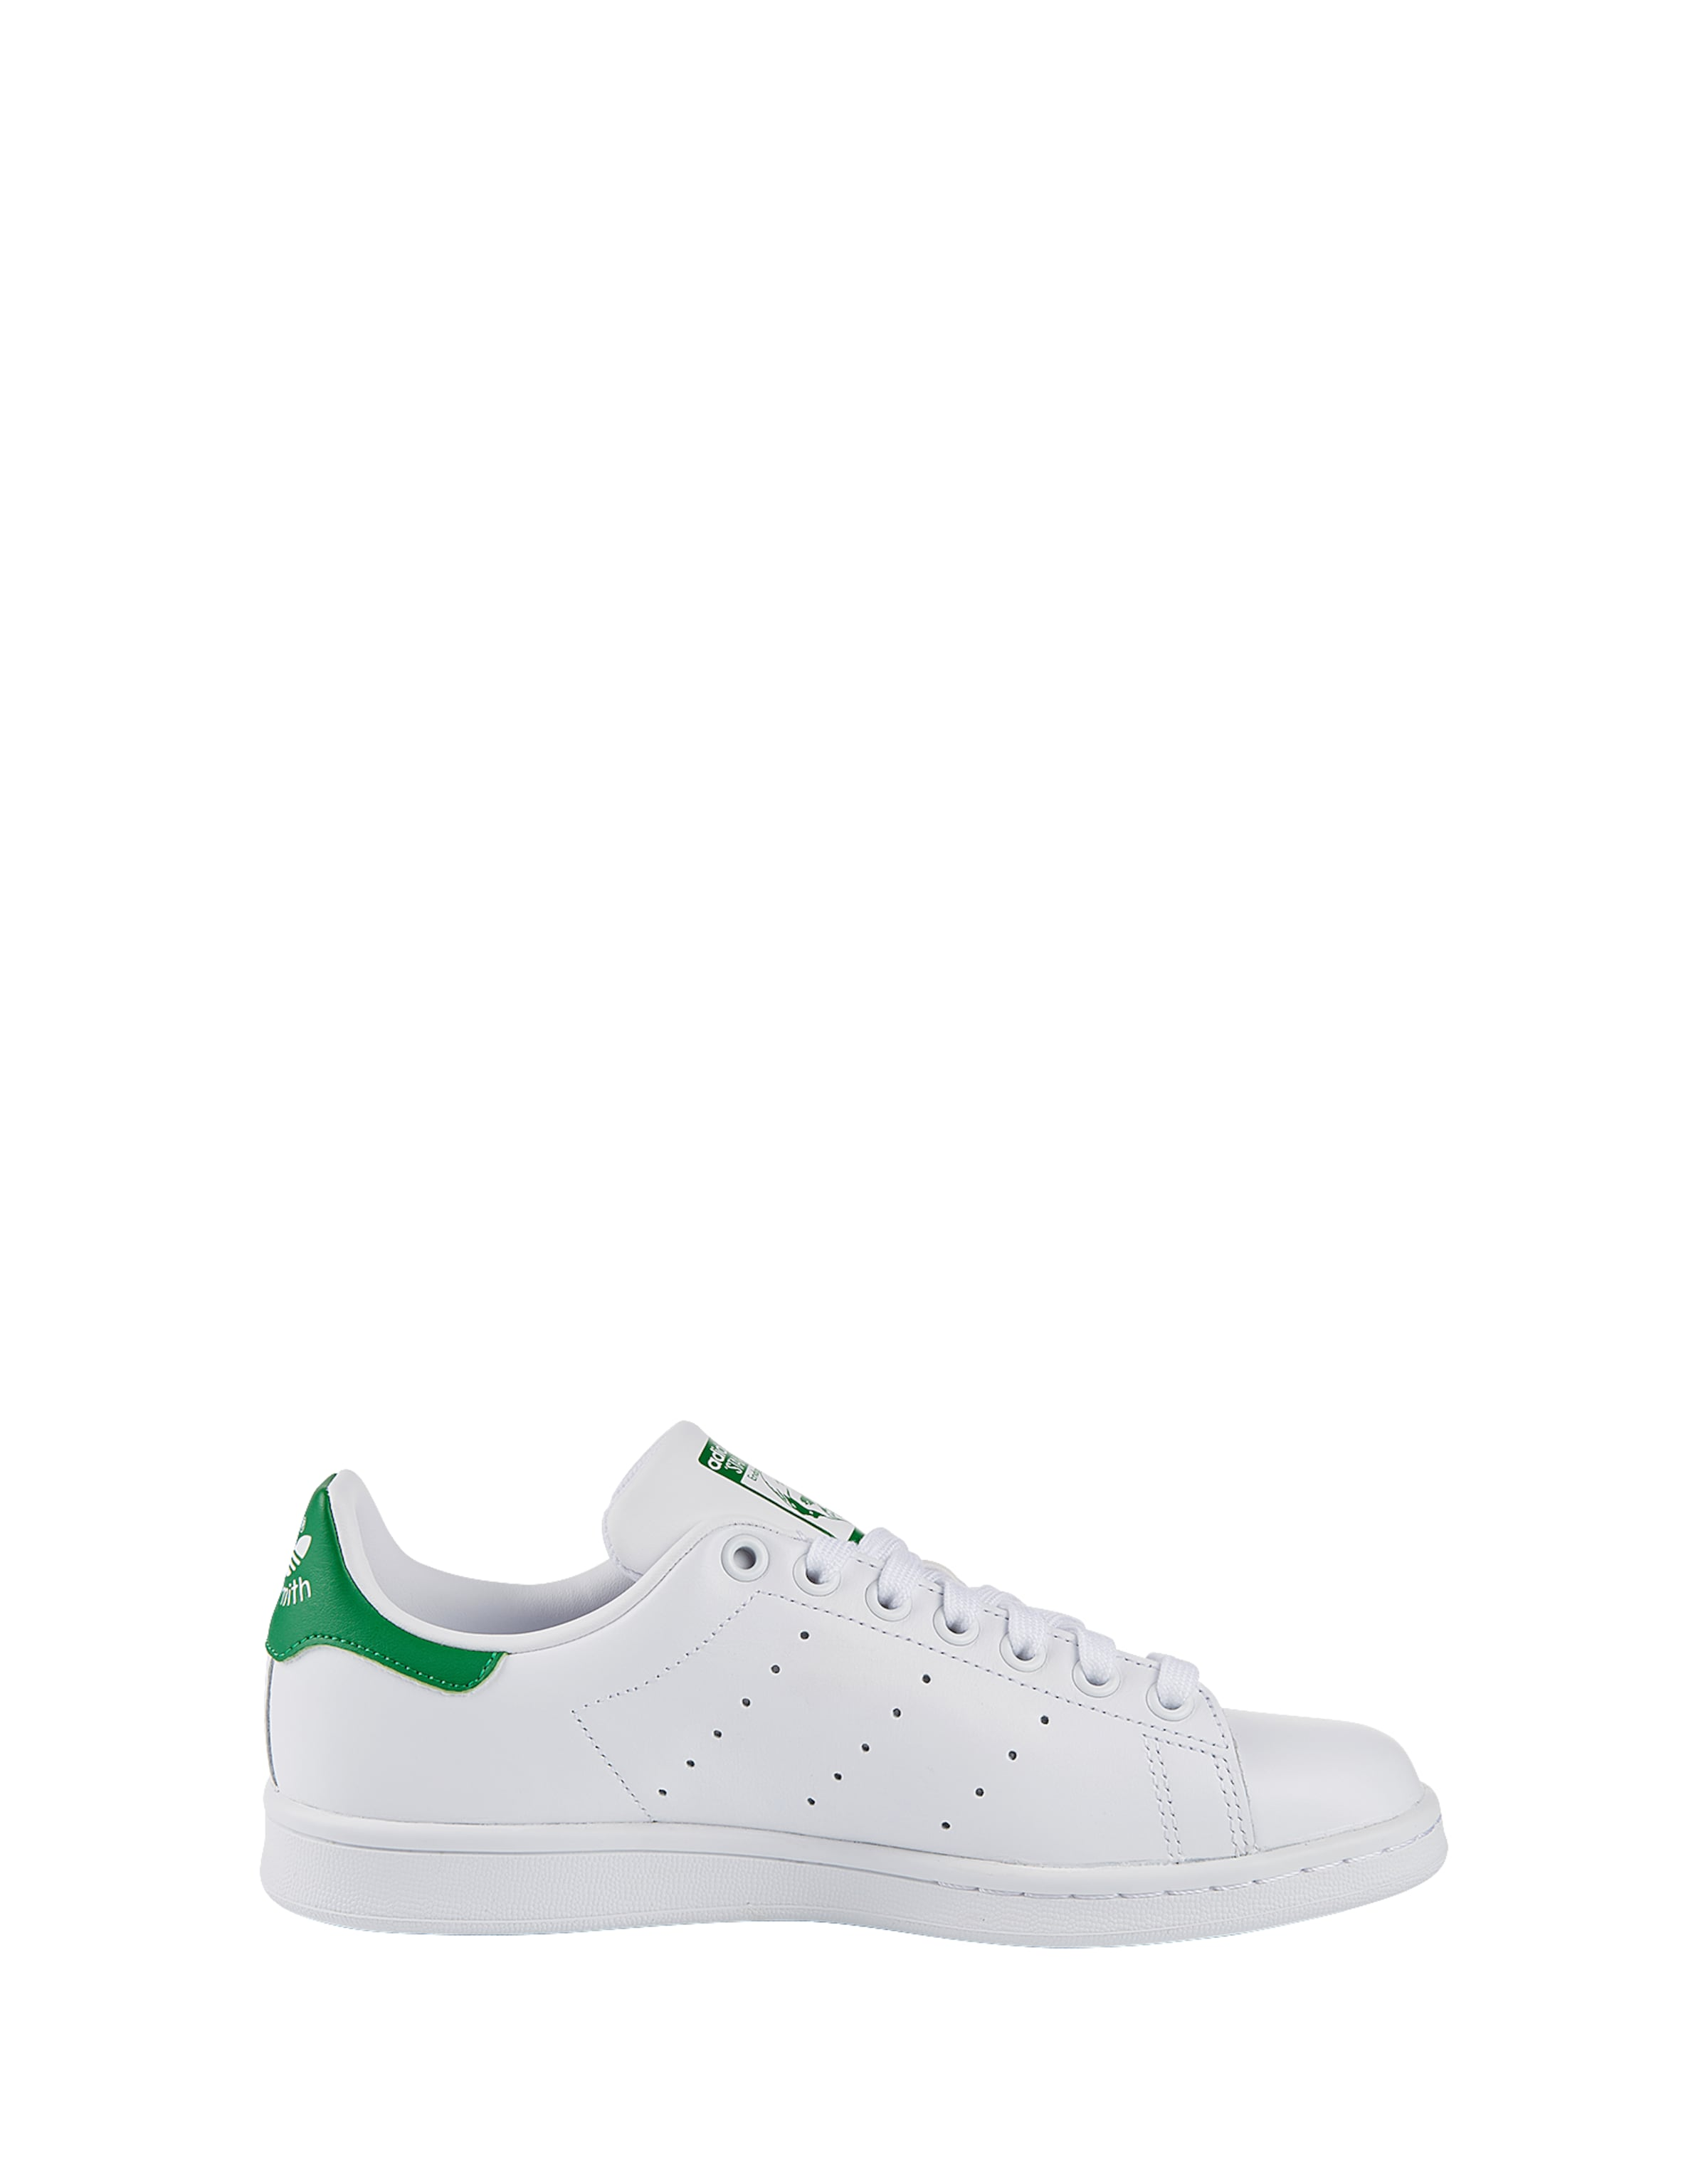 ADIDAS ORIGINALS Sneakers laag Stan Smith in Groen / Wit Effen Ado0099001001000